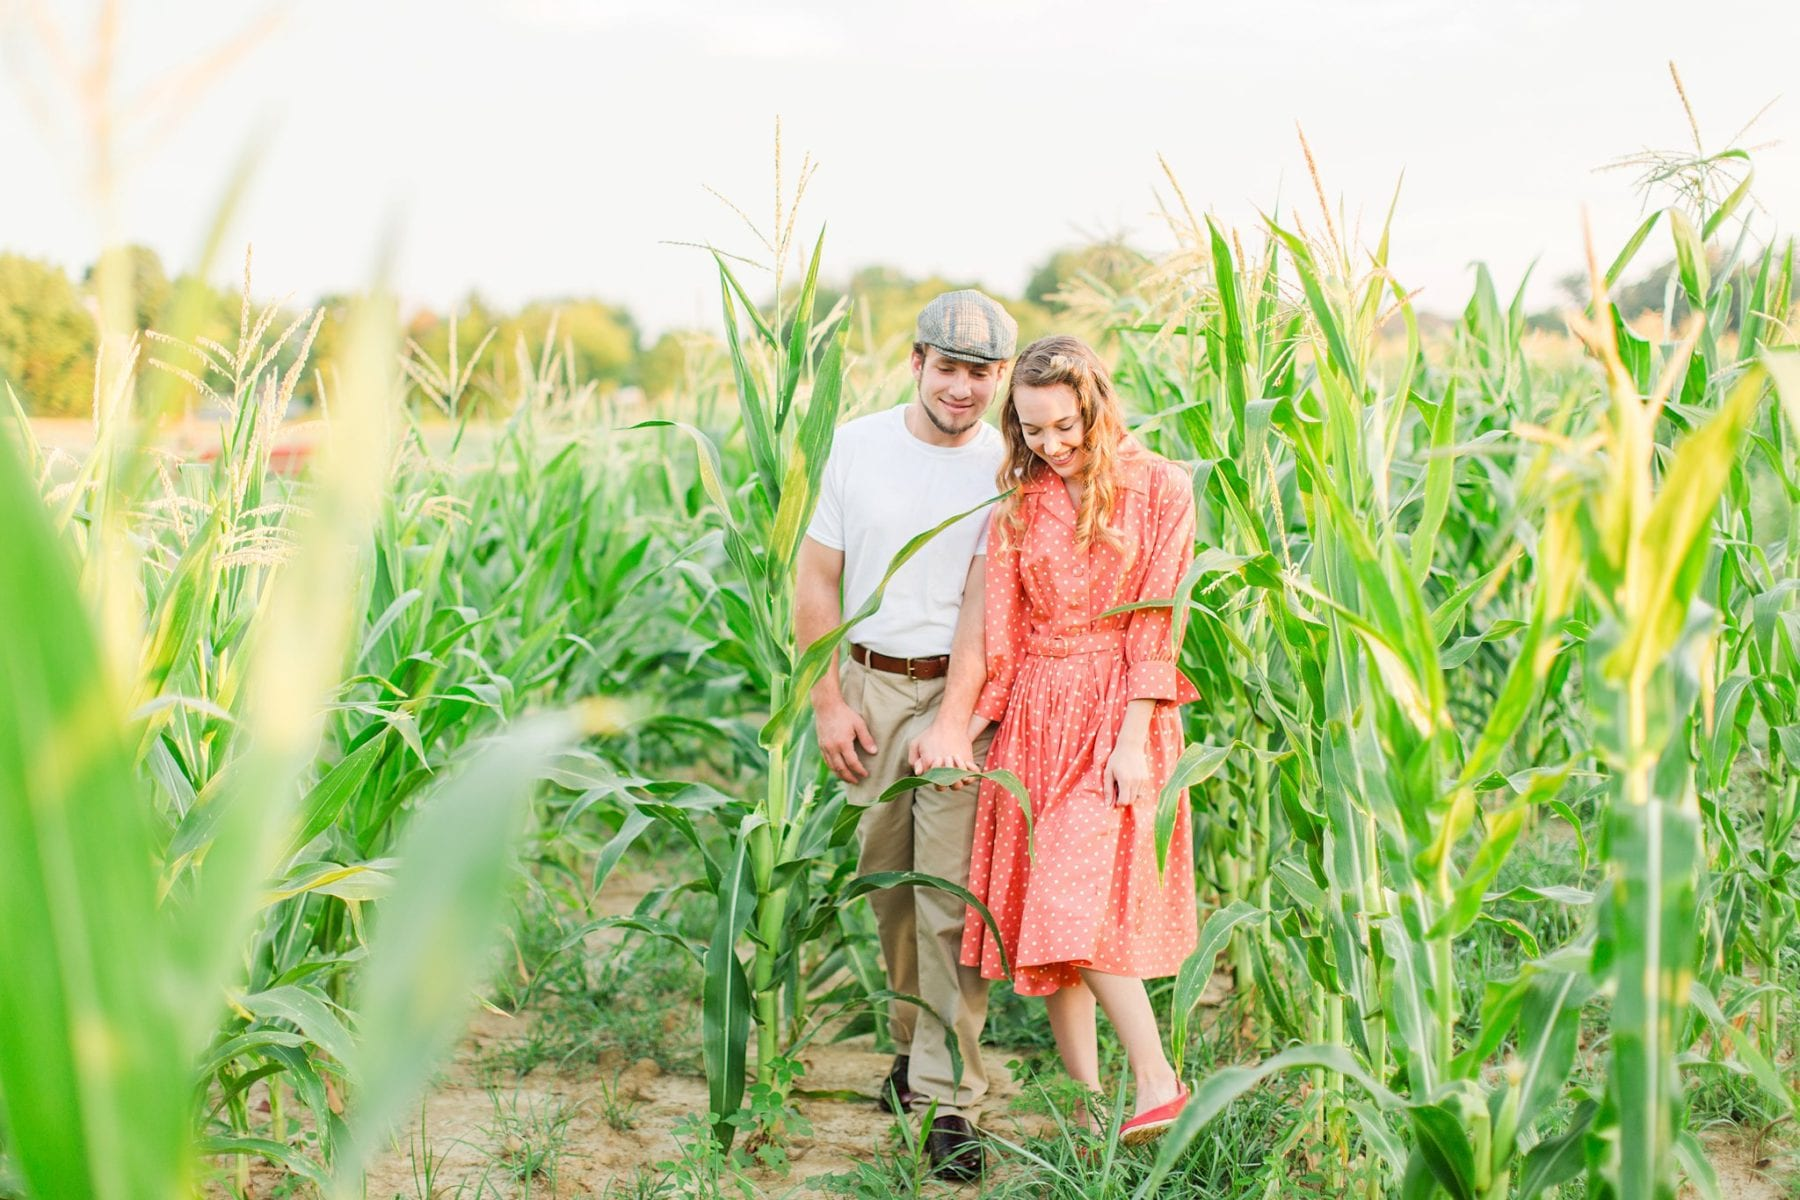 County Fair Engagement Photos Virginia Wedding Photographer Megan Kelsey Photography Samantha & Charles-46.JPG